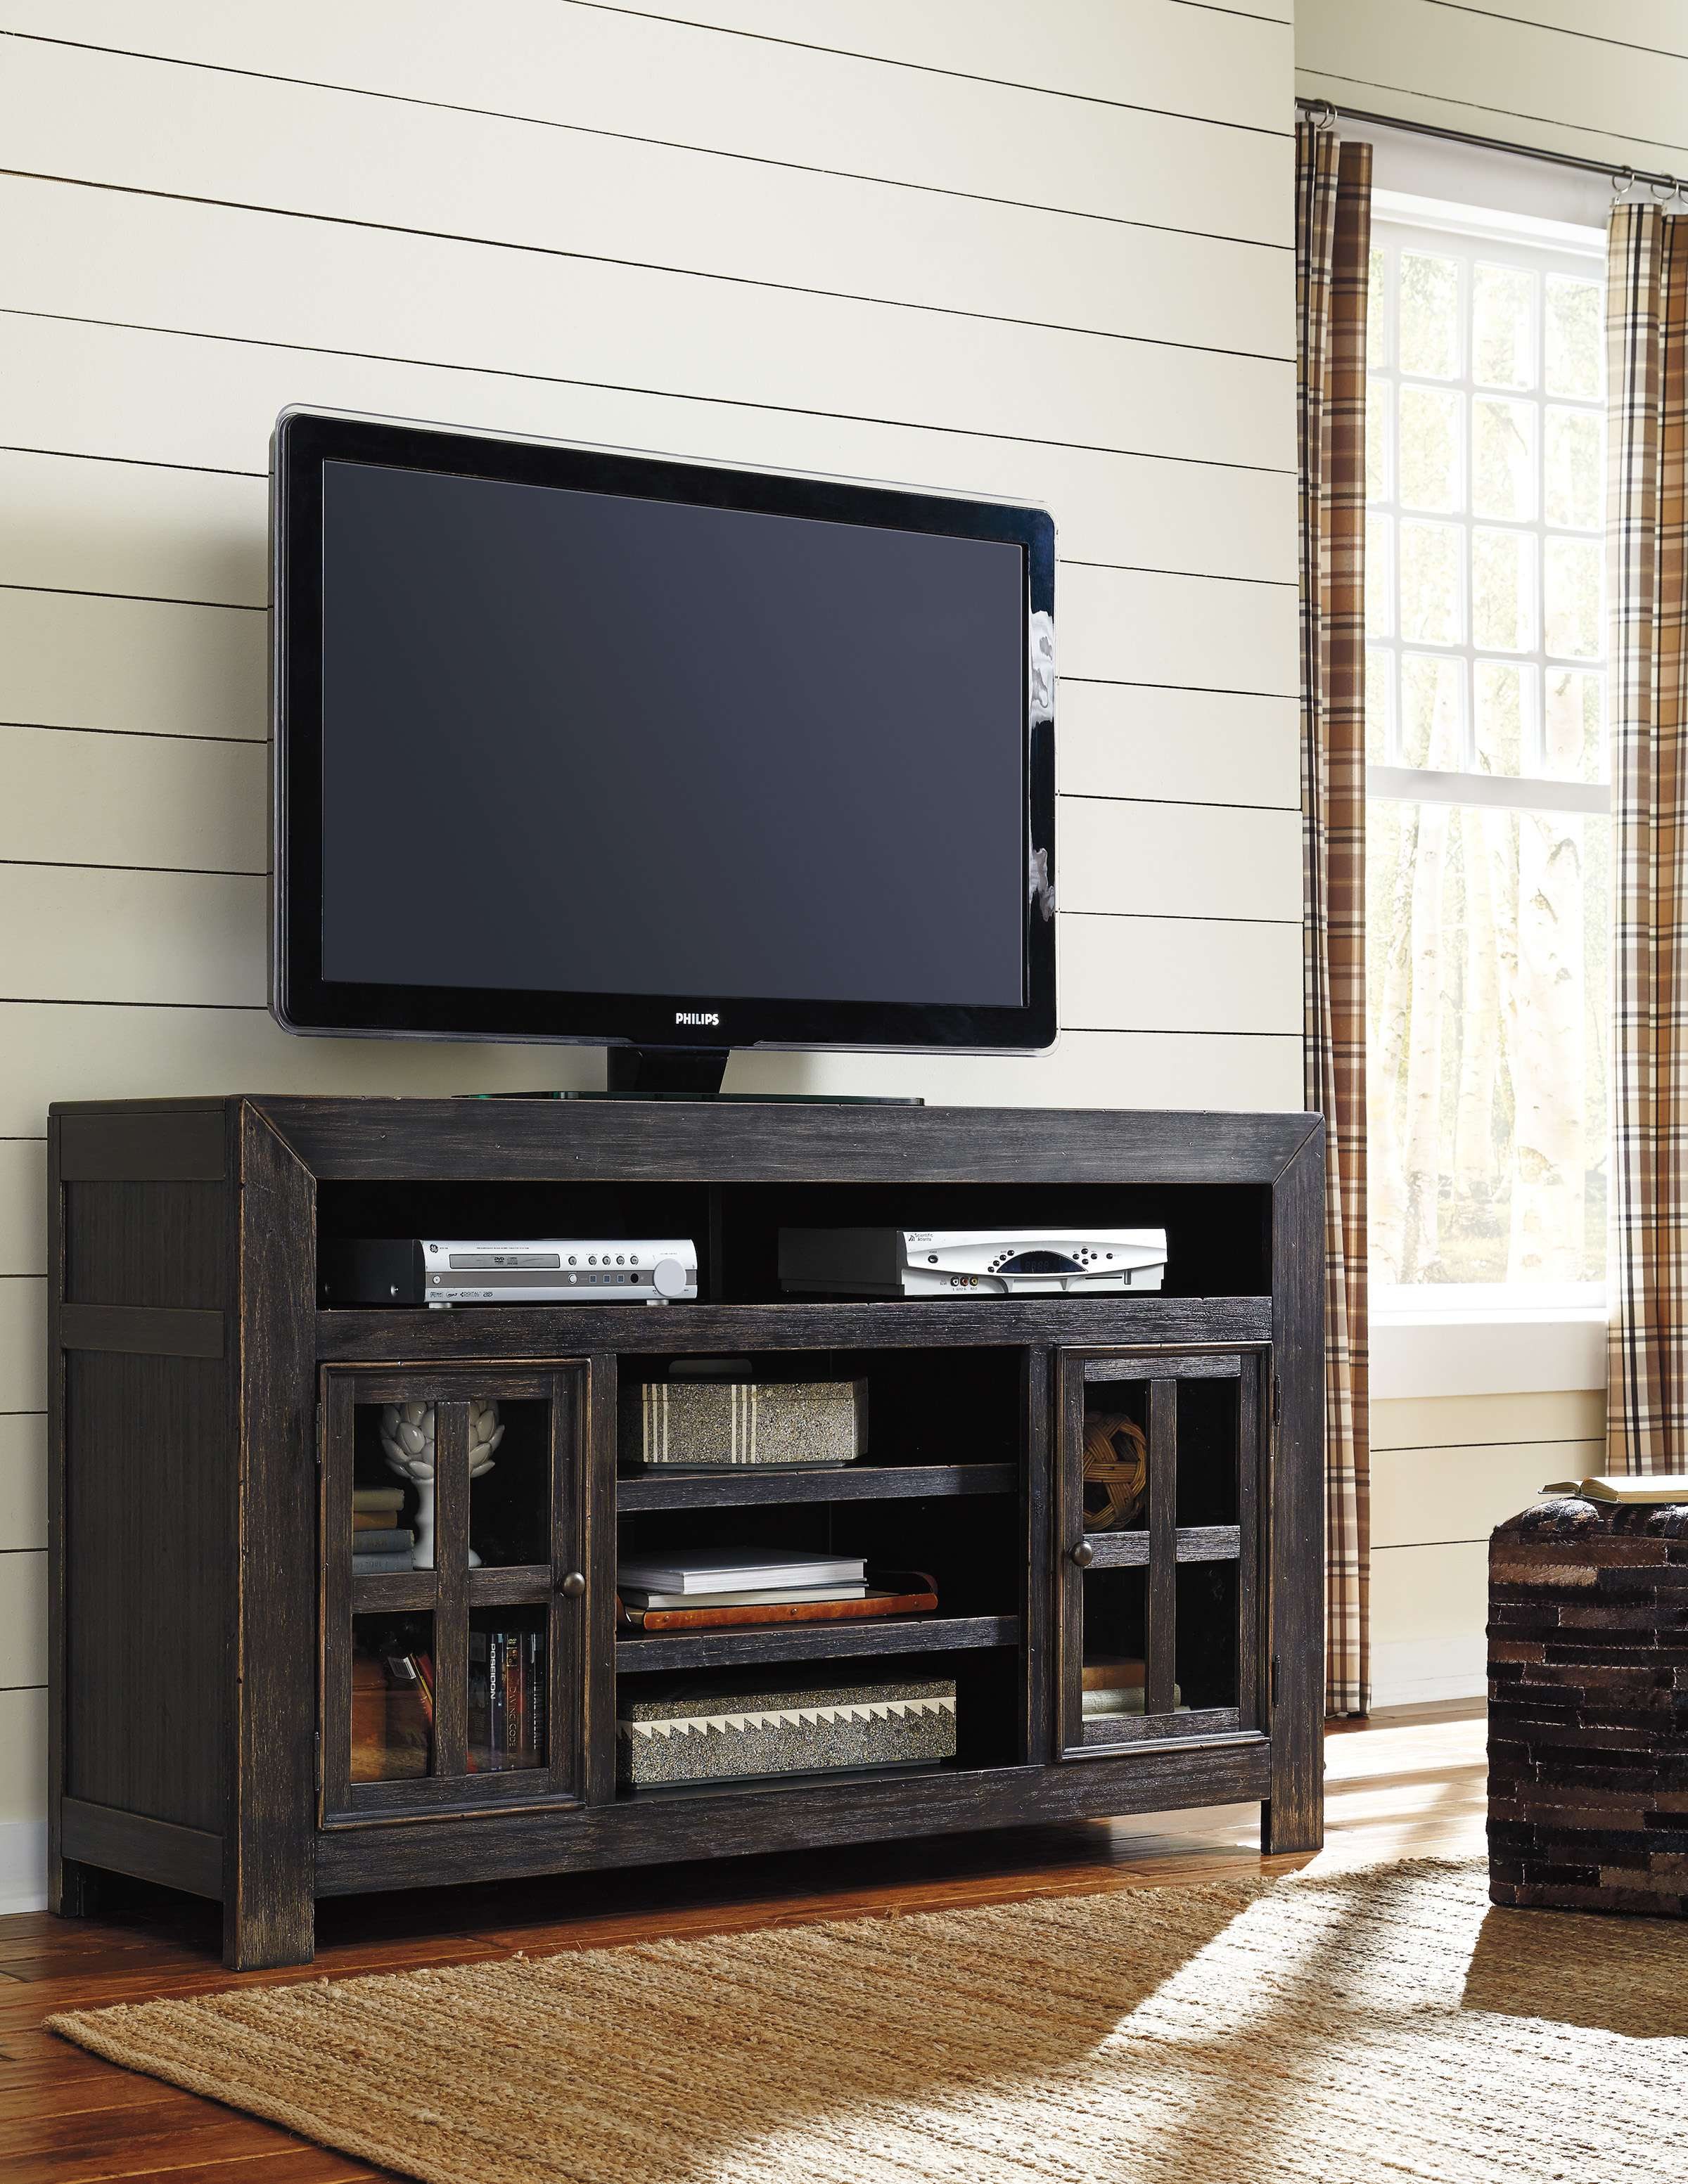 d46f50c8716 Signature Design by Ashley Gavelston Black Entertainment Center With ...